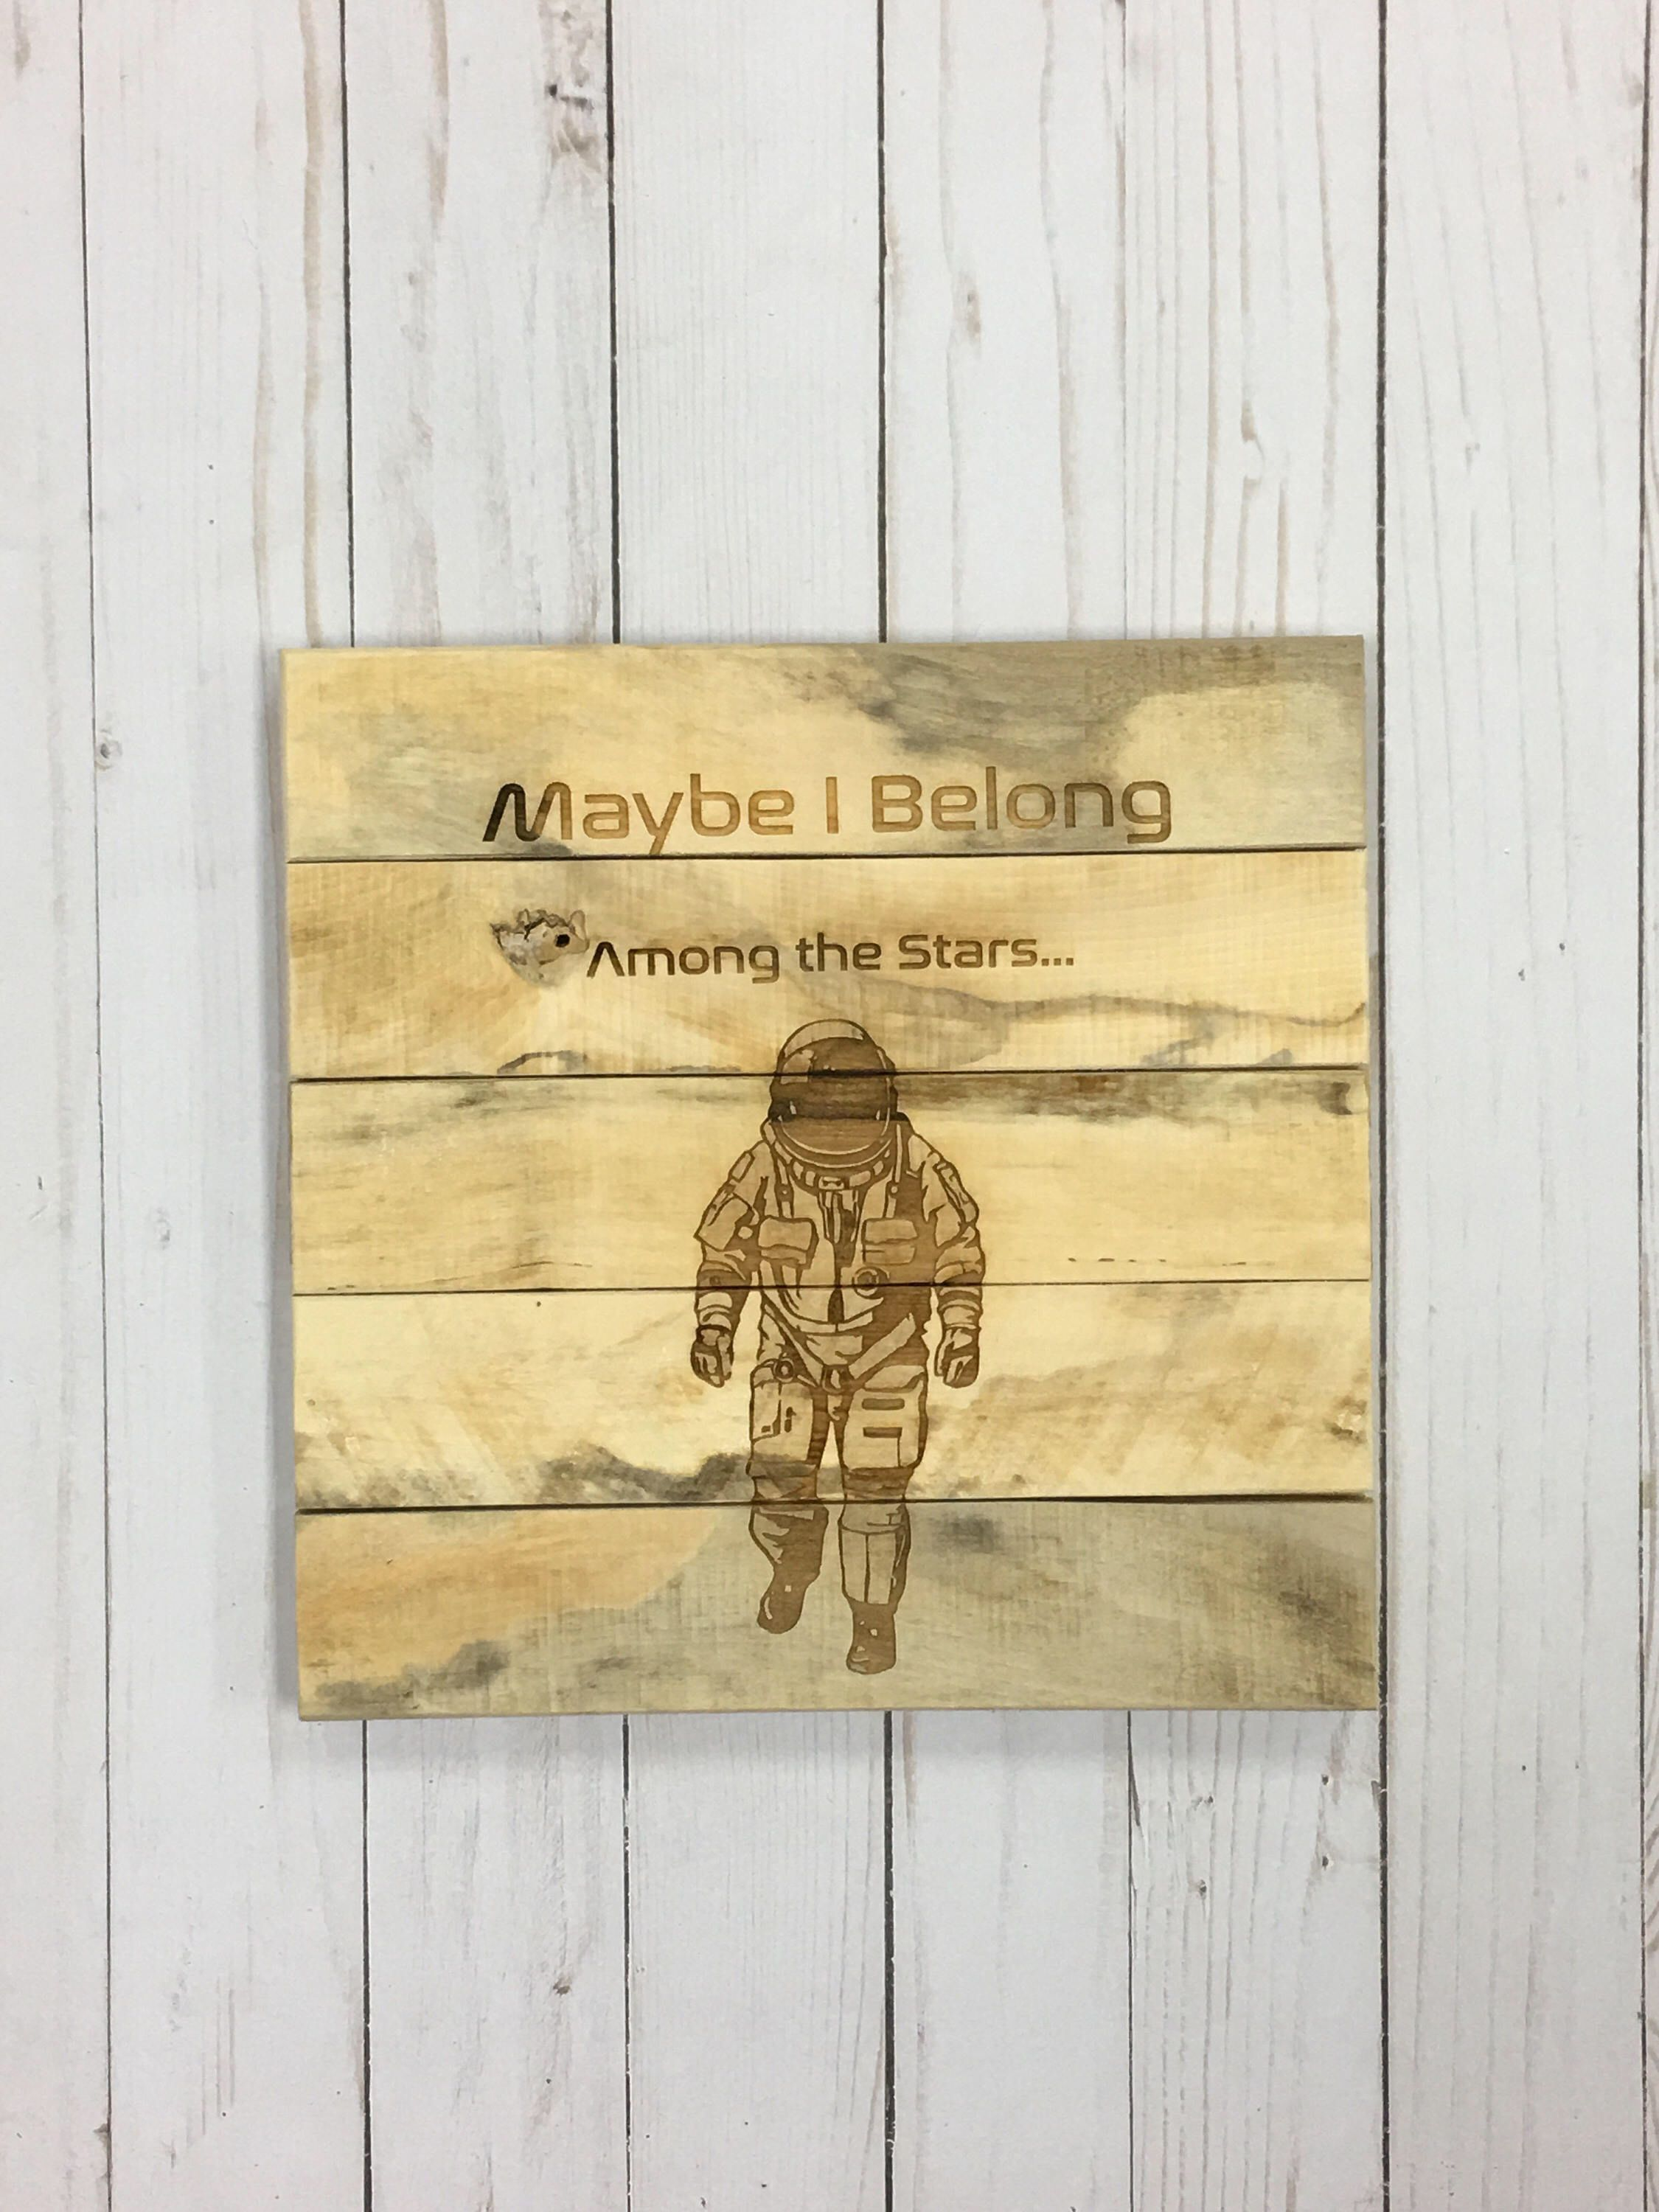 10x10 Astronaut Maybe I Belong Among The Stars Laser Engraved Rustic Pallet Sign By Laserlingo On Etsy Ht With Images Pallet Signs Rustic Reclaimed Wood Decor Star Laser